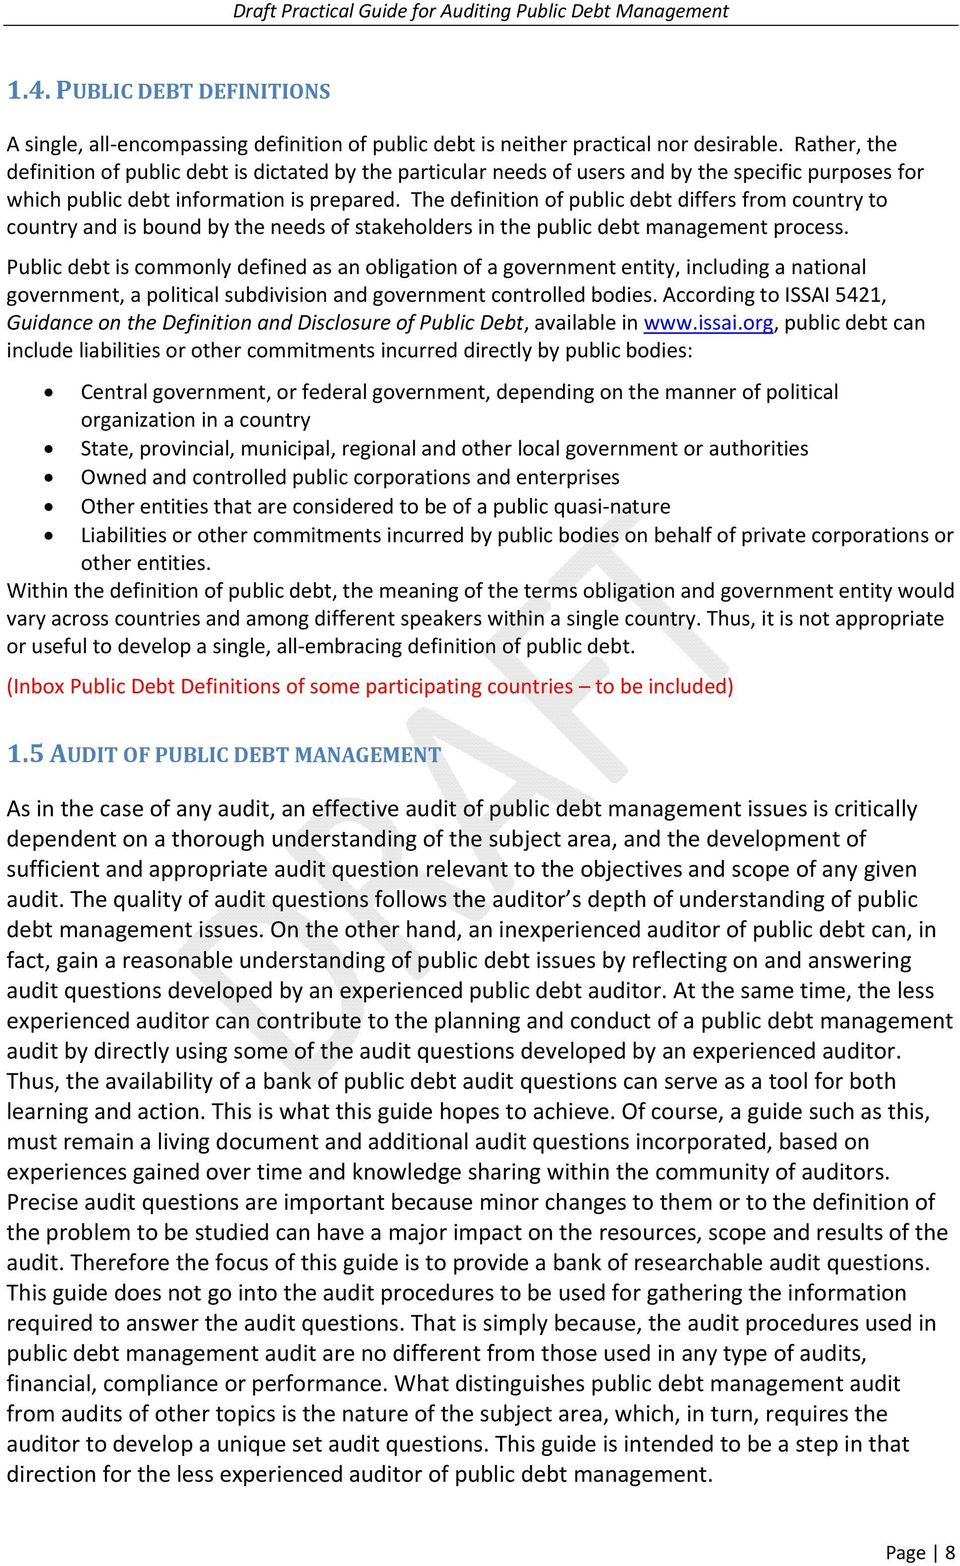 auditing public debt management - pdf